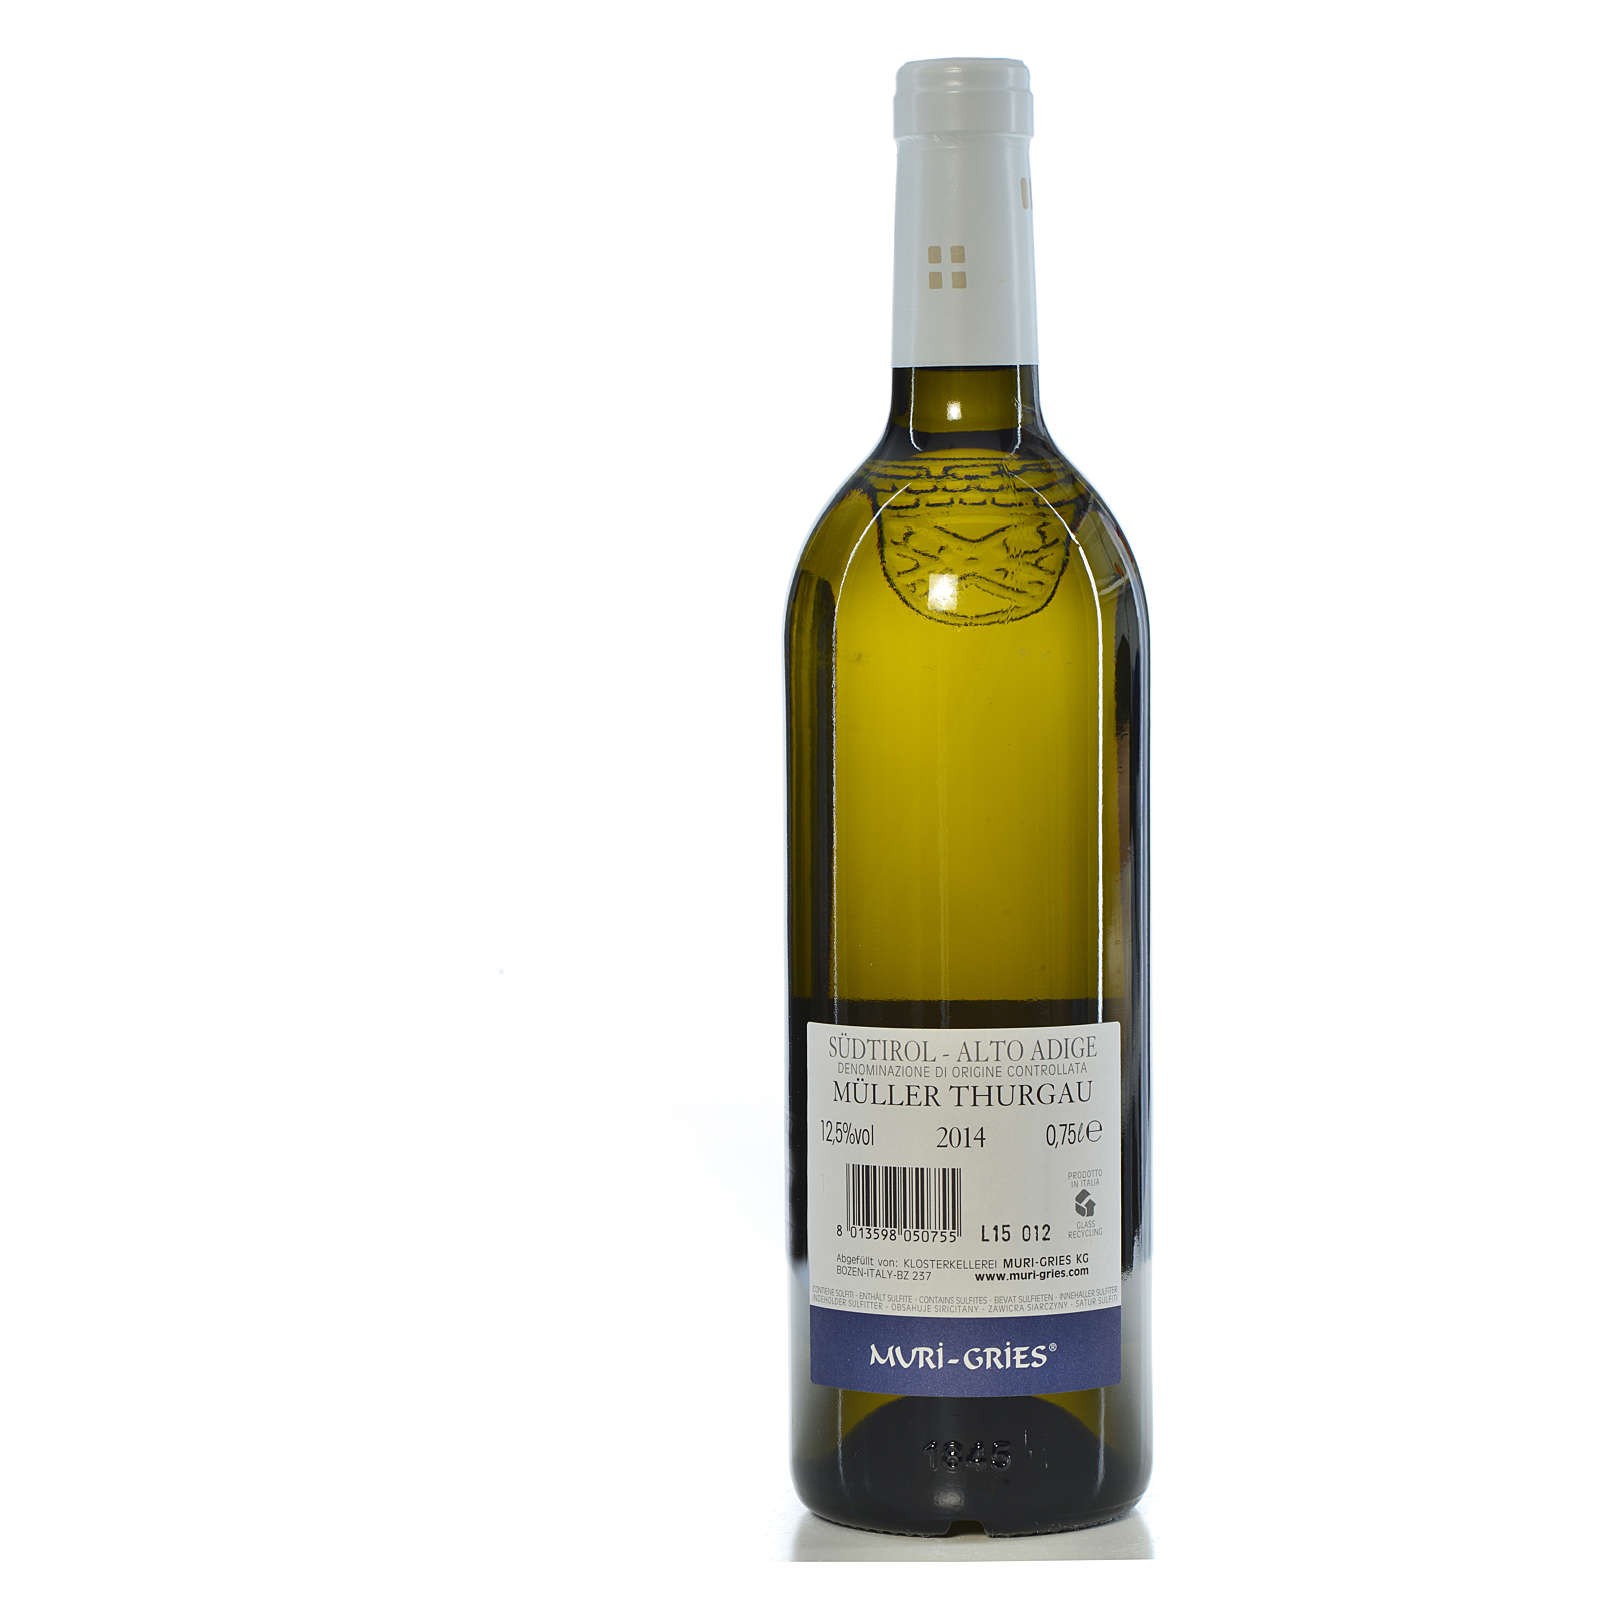 Muller Thurgau DOC 2014 wine Muri Gries Abbay 3